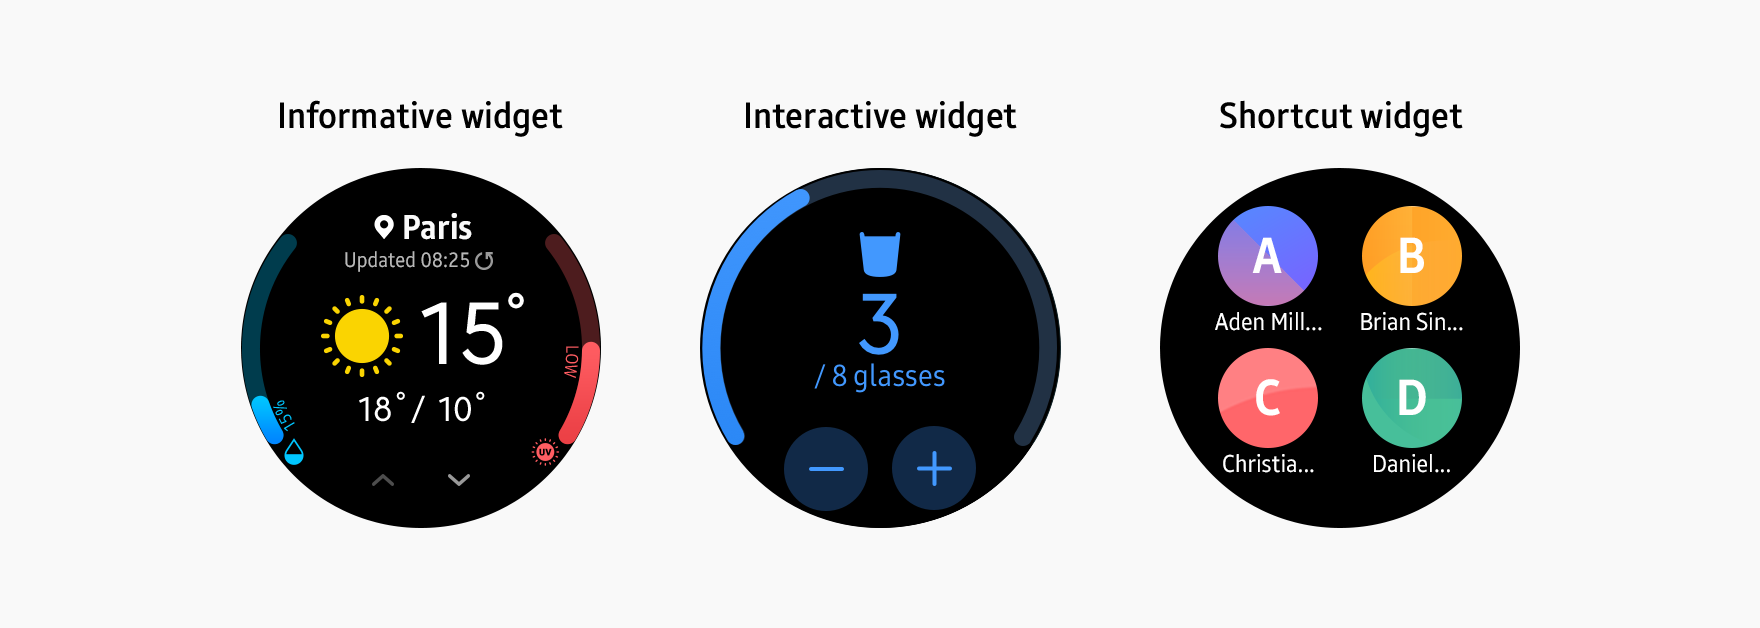 Three types of widgets are available to use: informative, interactive, and shortcut.